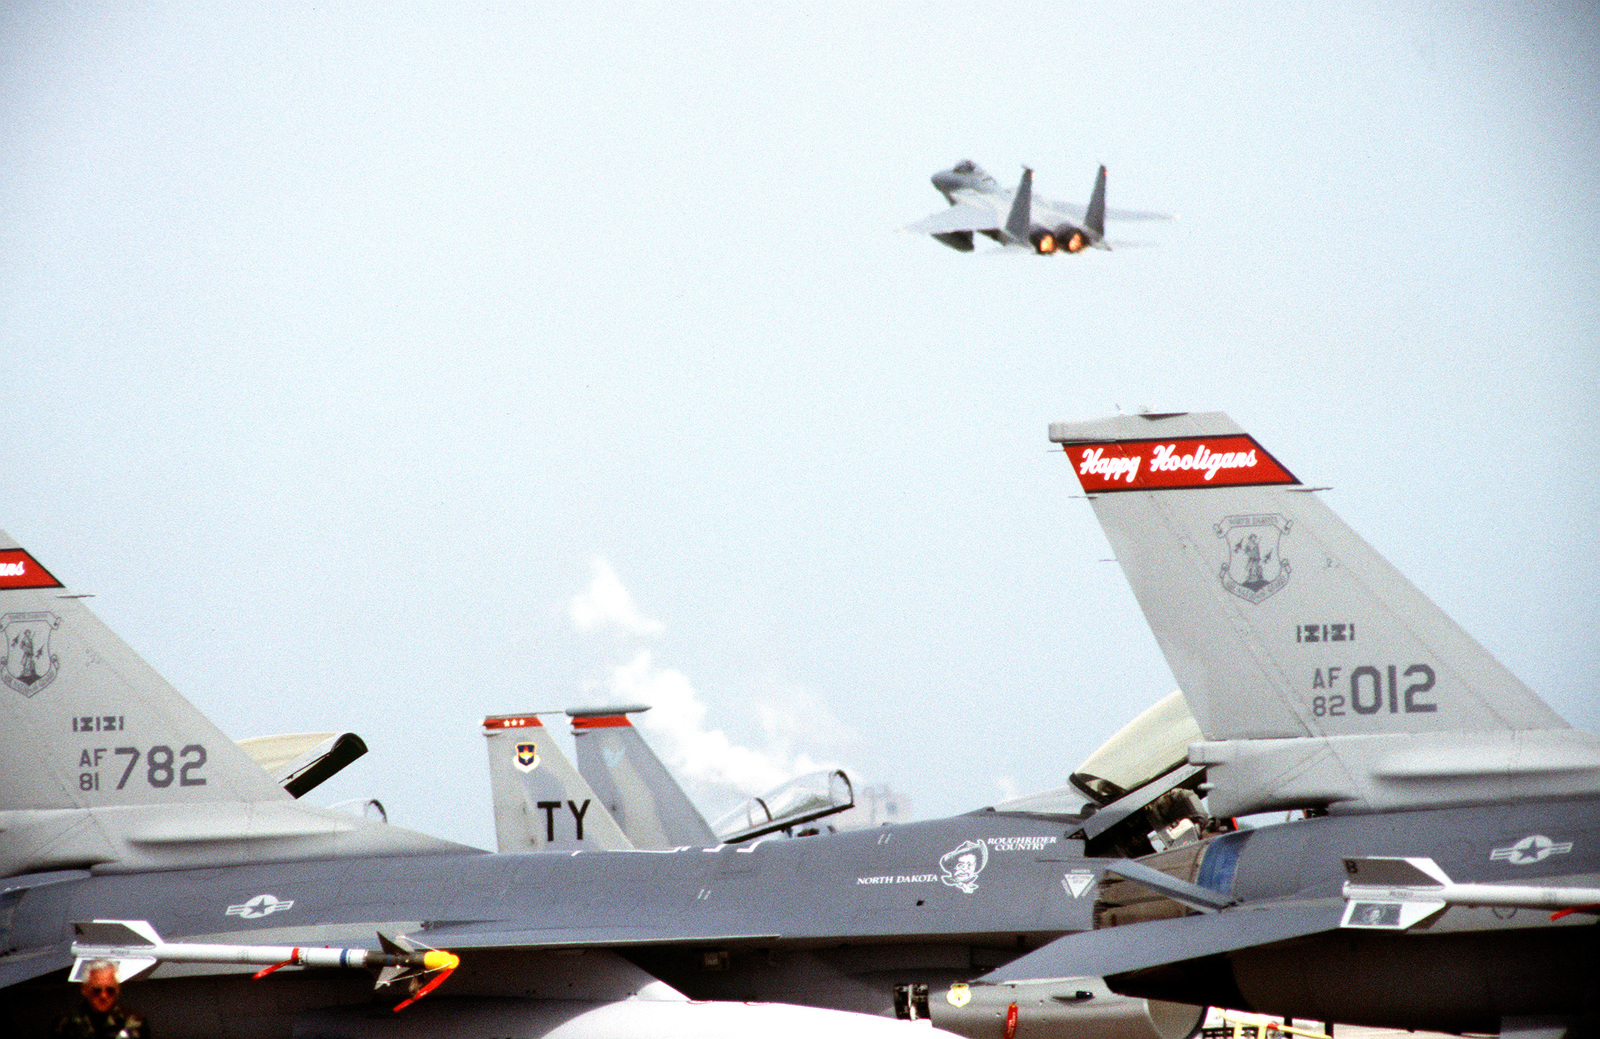 An F-15 Fighter aircraft from the 18th Fighter Wing, Kadena Air Base, Japan, takes off over F-16 Fighter aircraft sitting on the flightline during competition William Tell '94